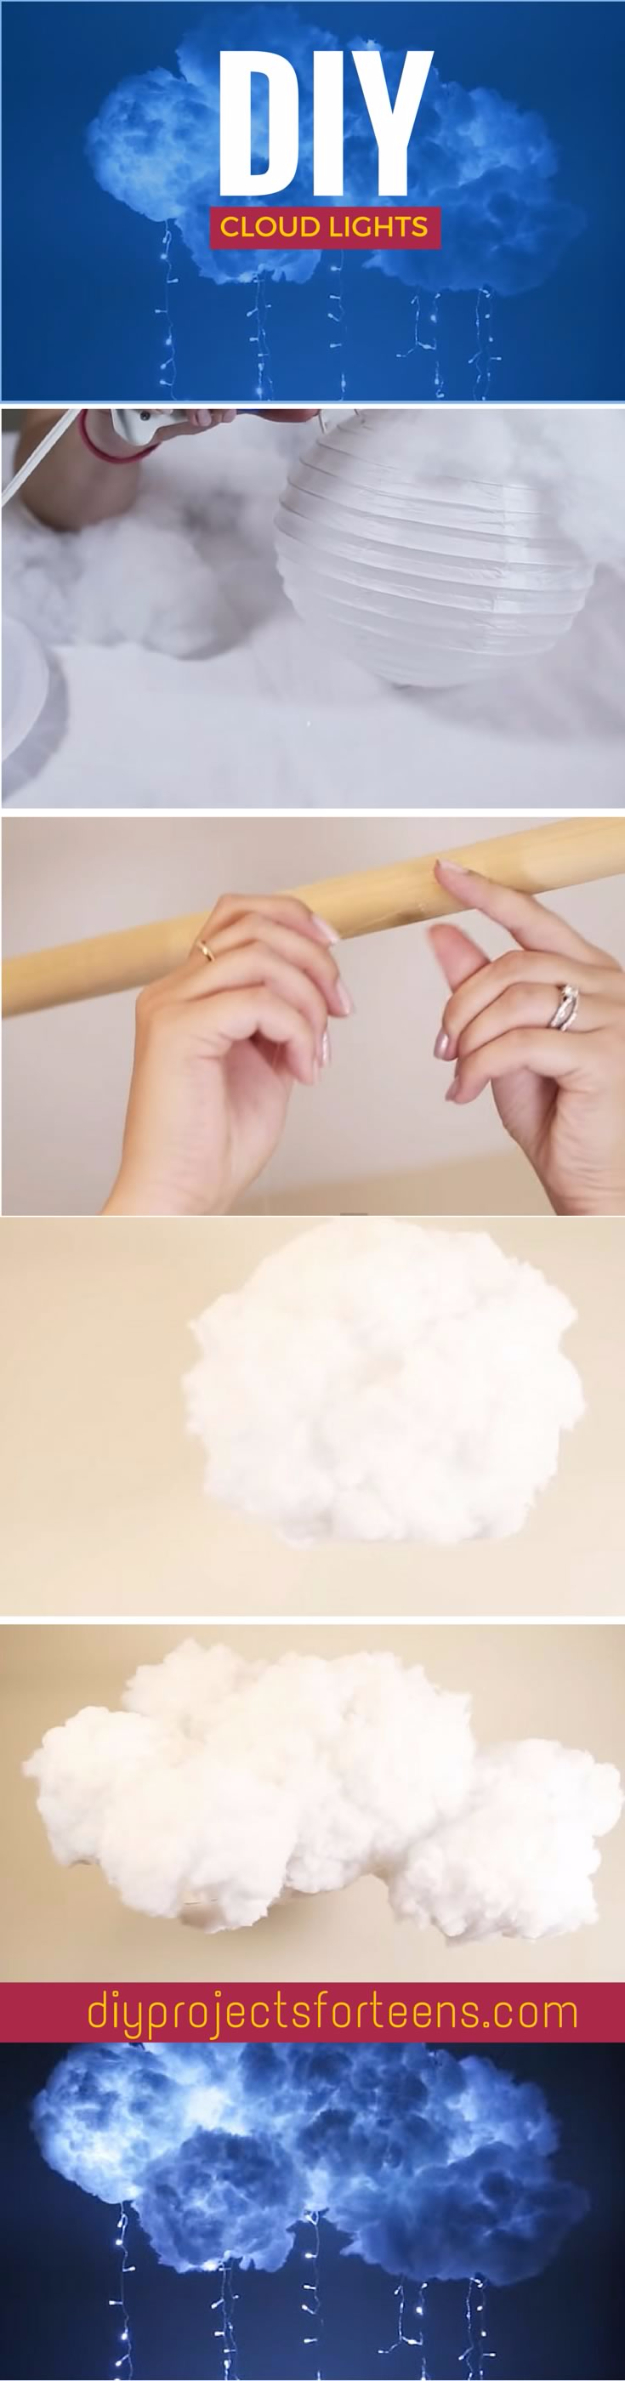 37 fun diy lighting ideas for teens diy projects for teens for Cool things to make with paper for your room